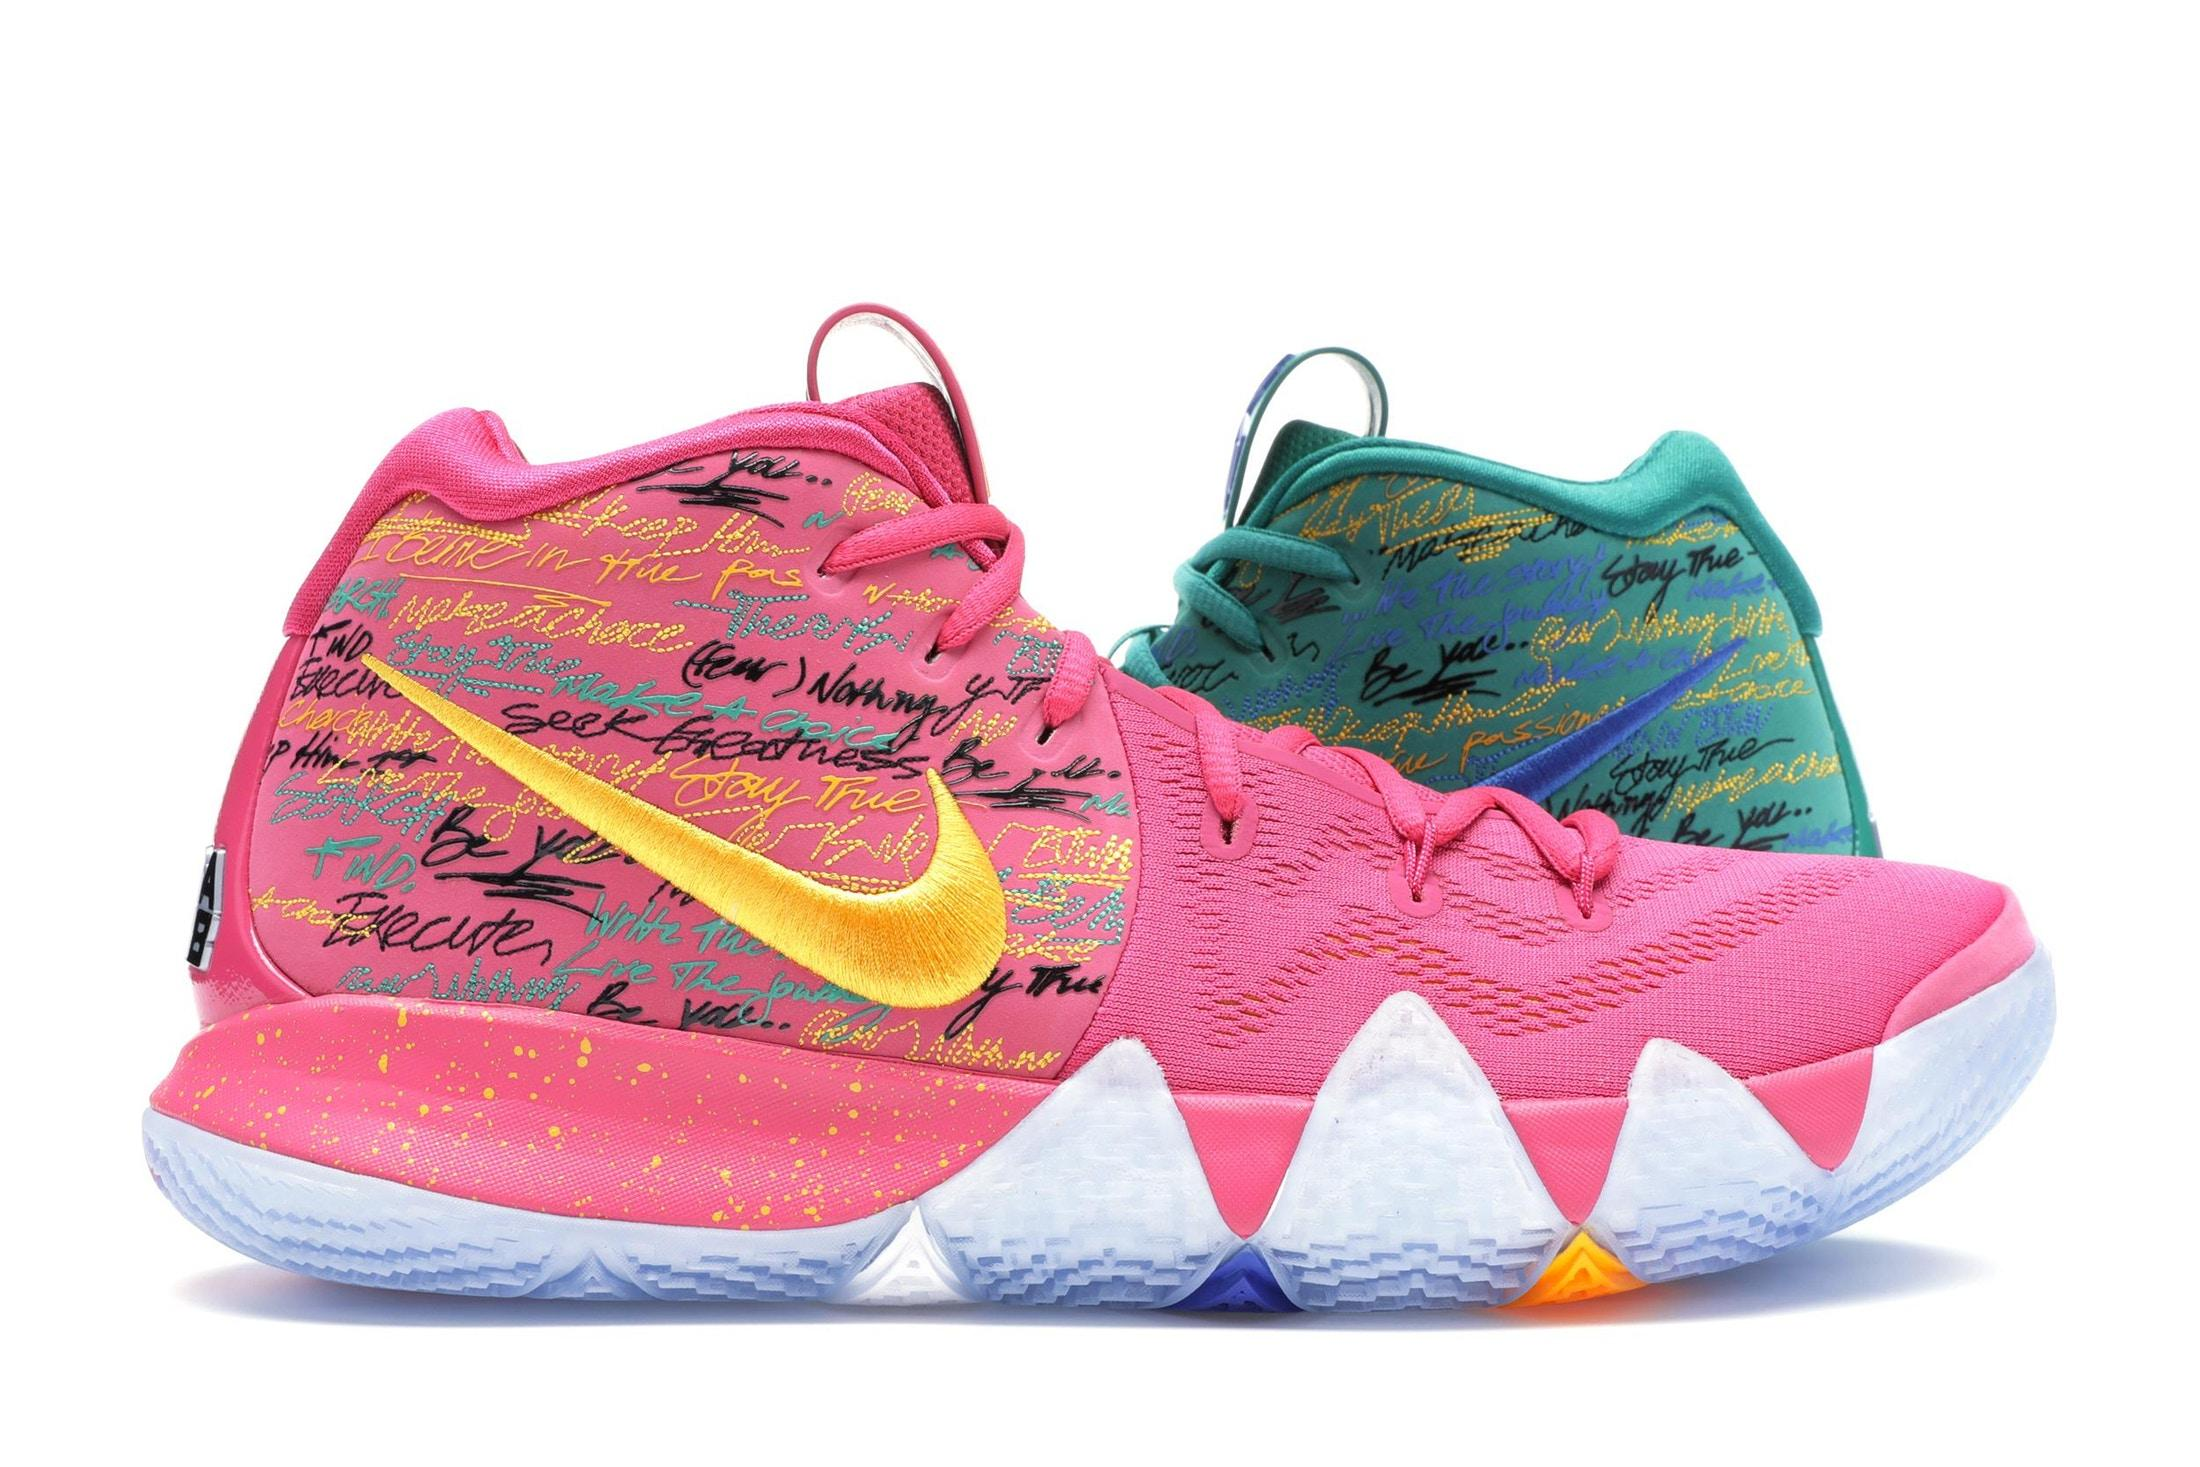 quality design ce7bd 8c2fd Men's Pink Kyrie 4 Nba 2k18